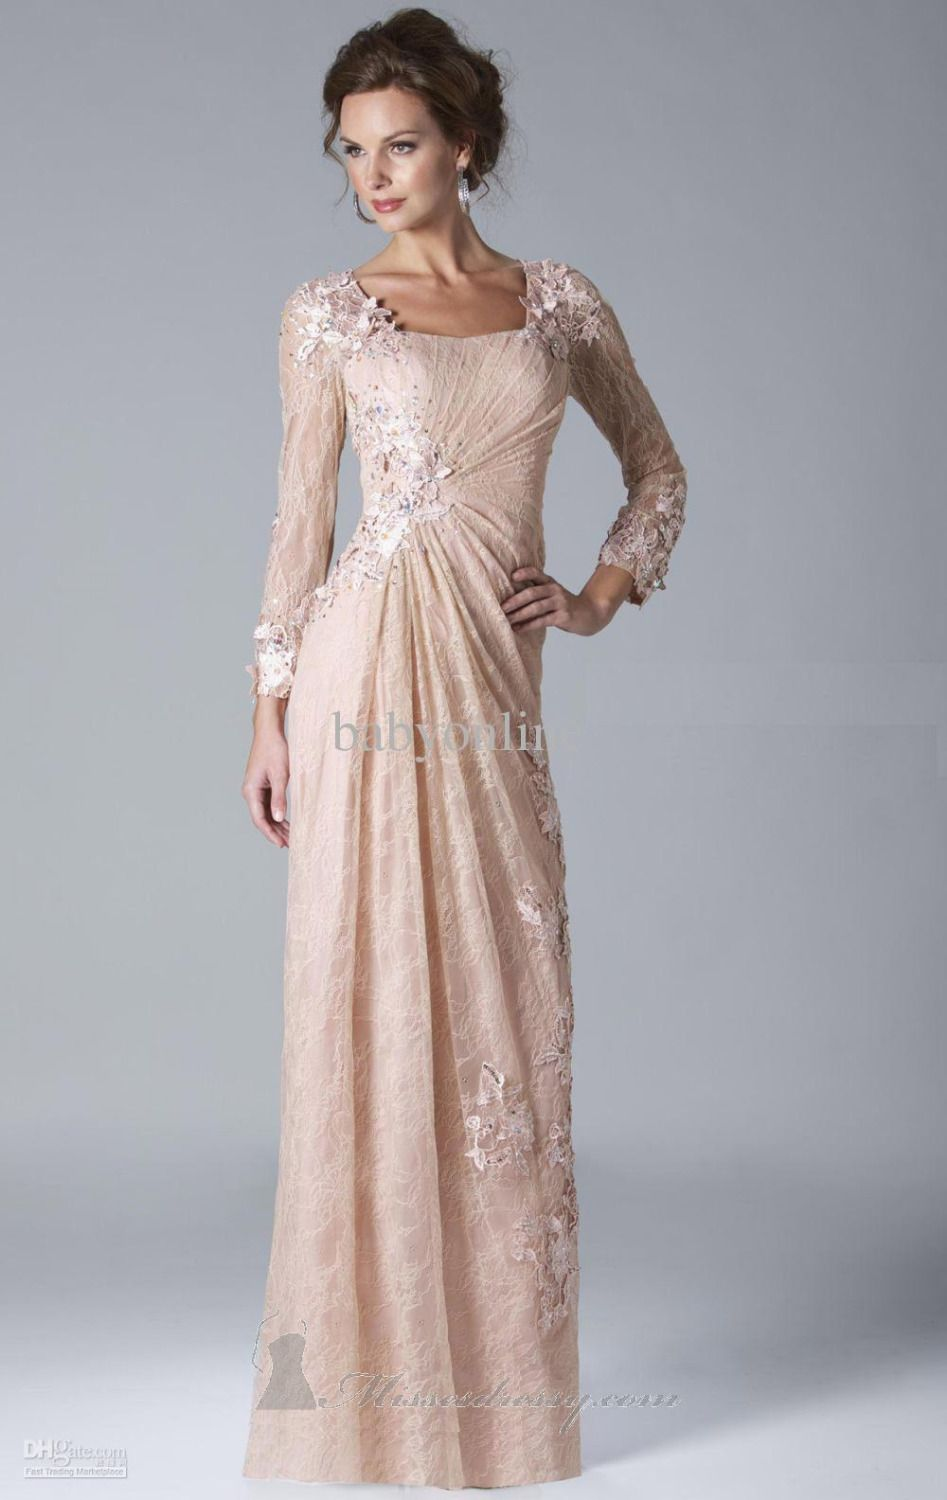 61b0acbee56df long sleeve mother of the bride dresses in pastel | See long sleeve ...